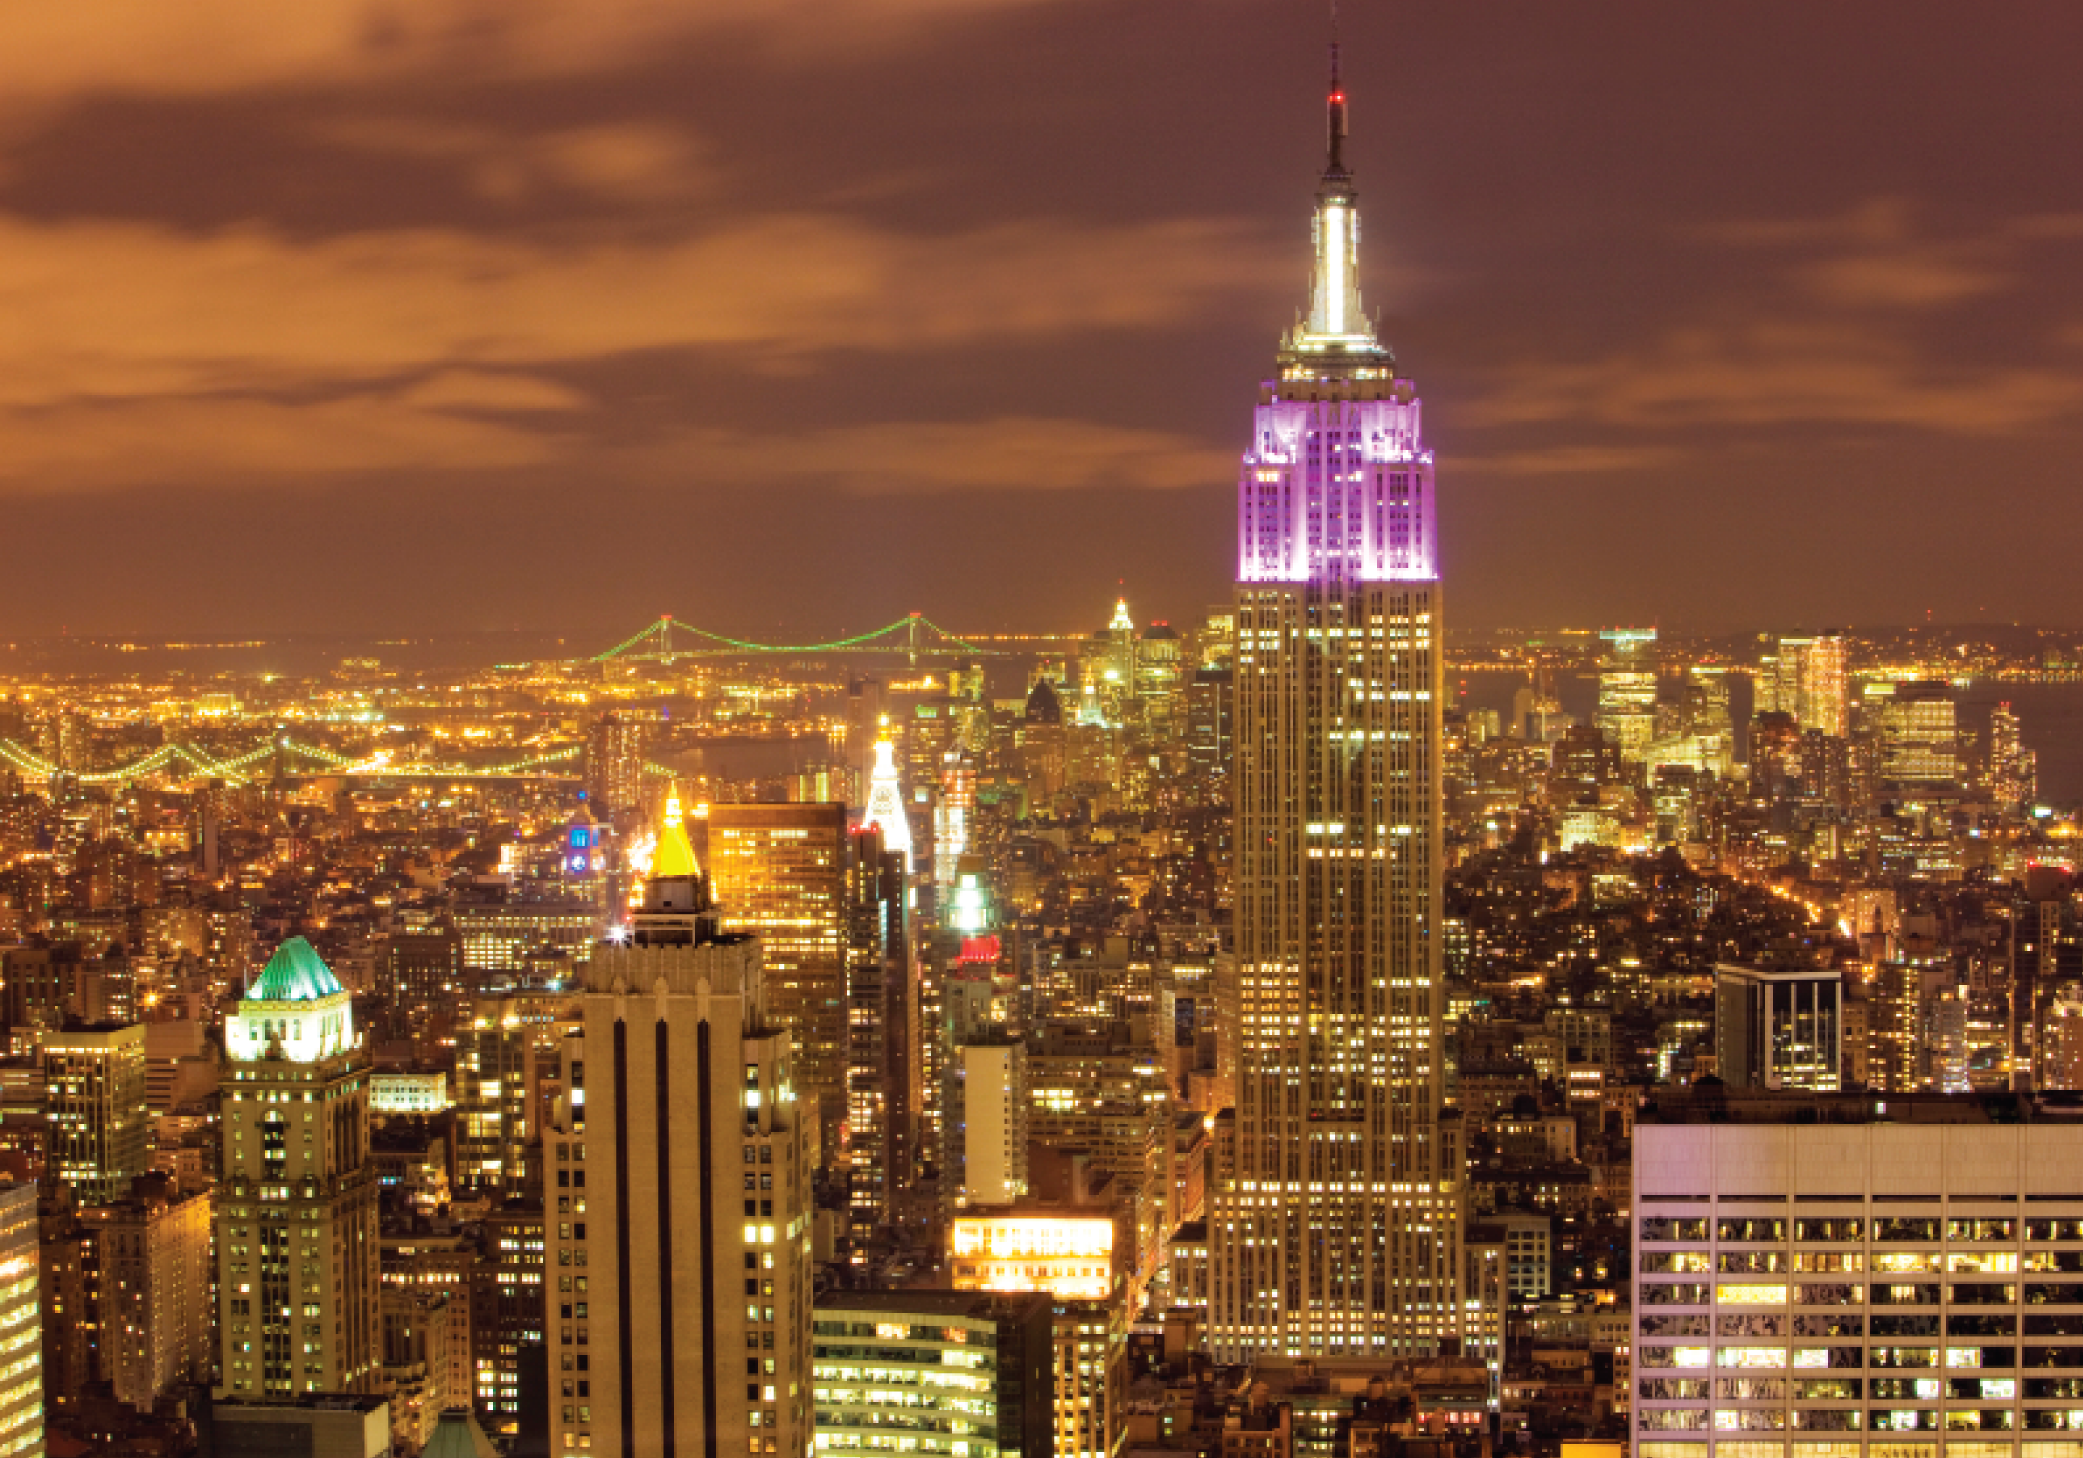 The  Empire State Building replaced its traditional exterior tower lighting system with an energy-efficient LED lighting system.